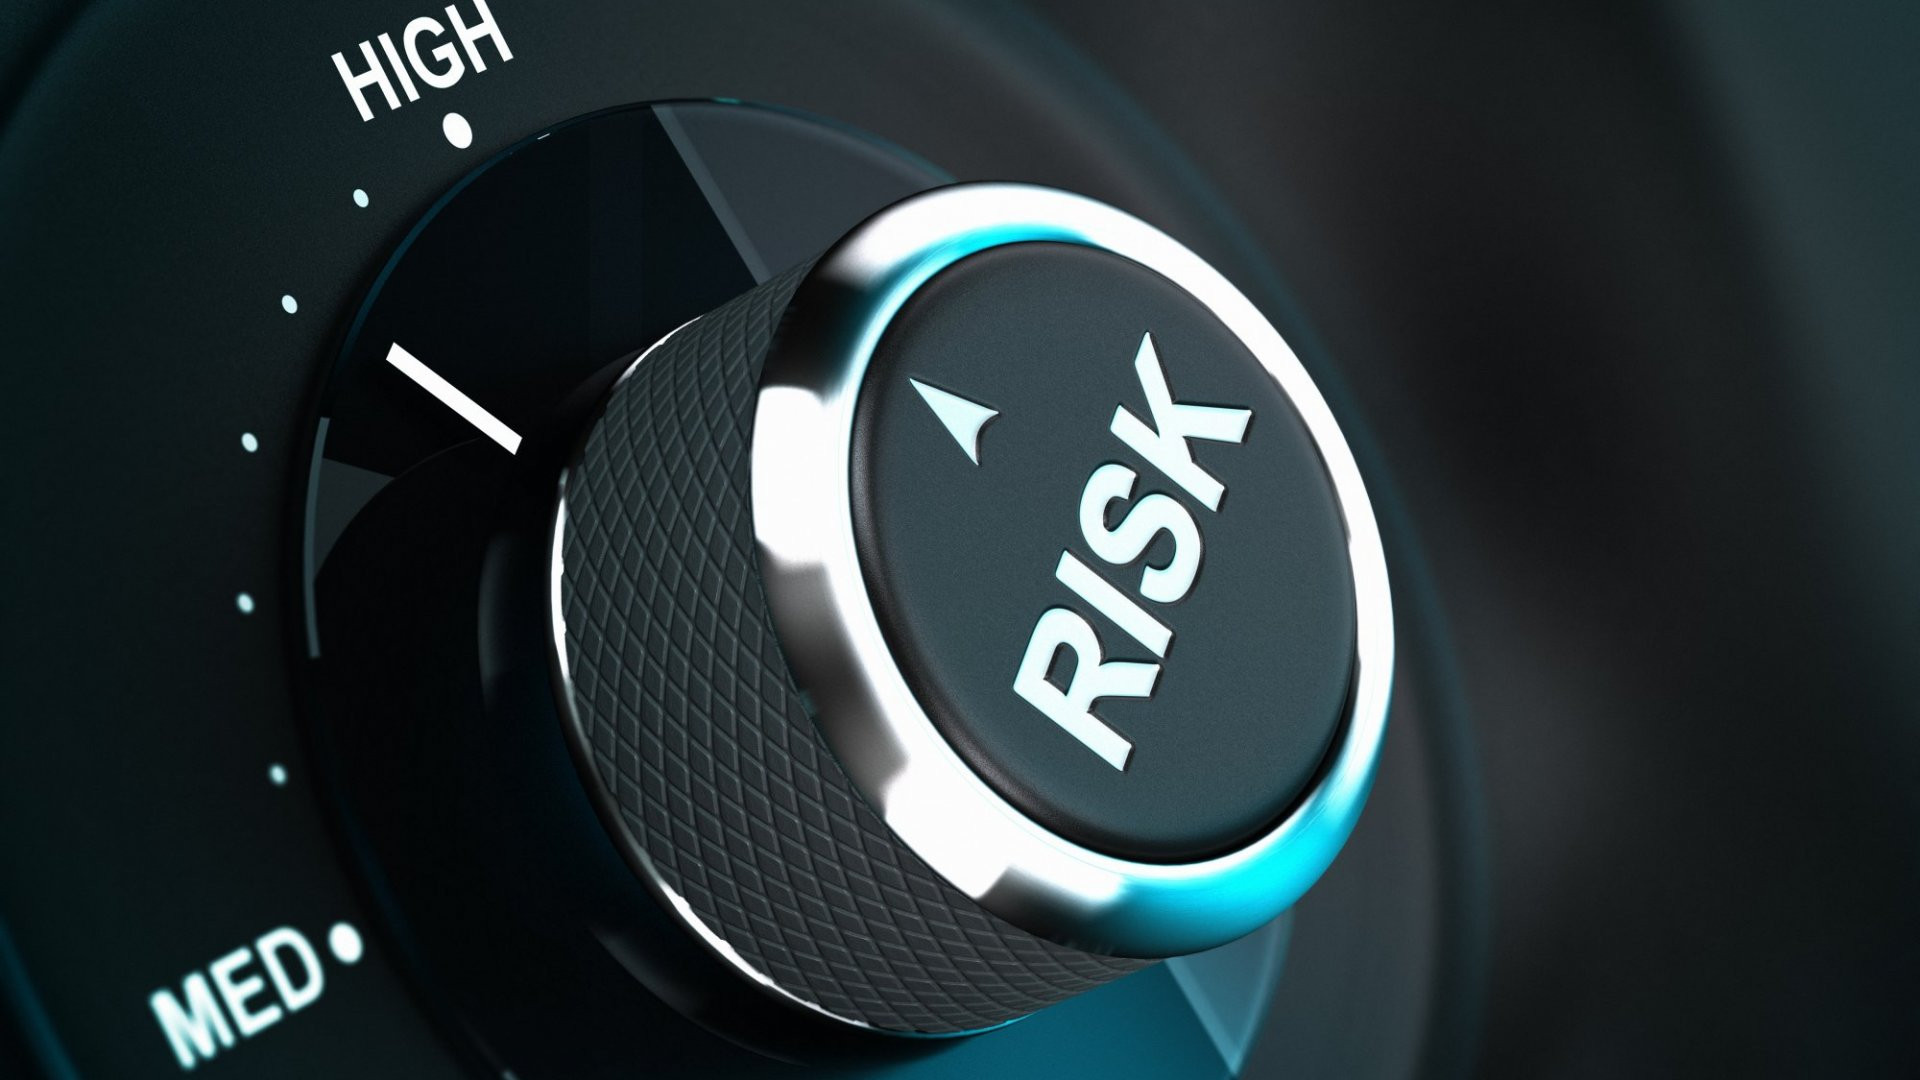 3 Risk Profiles: What's Your Tolerance Level?